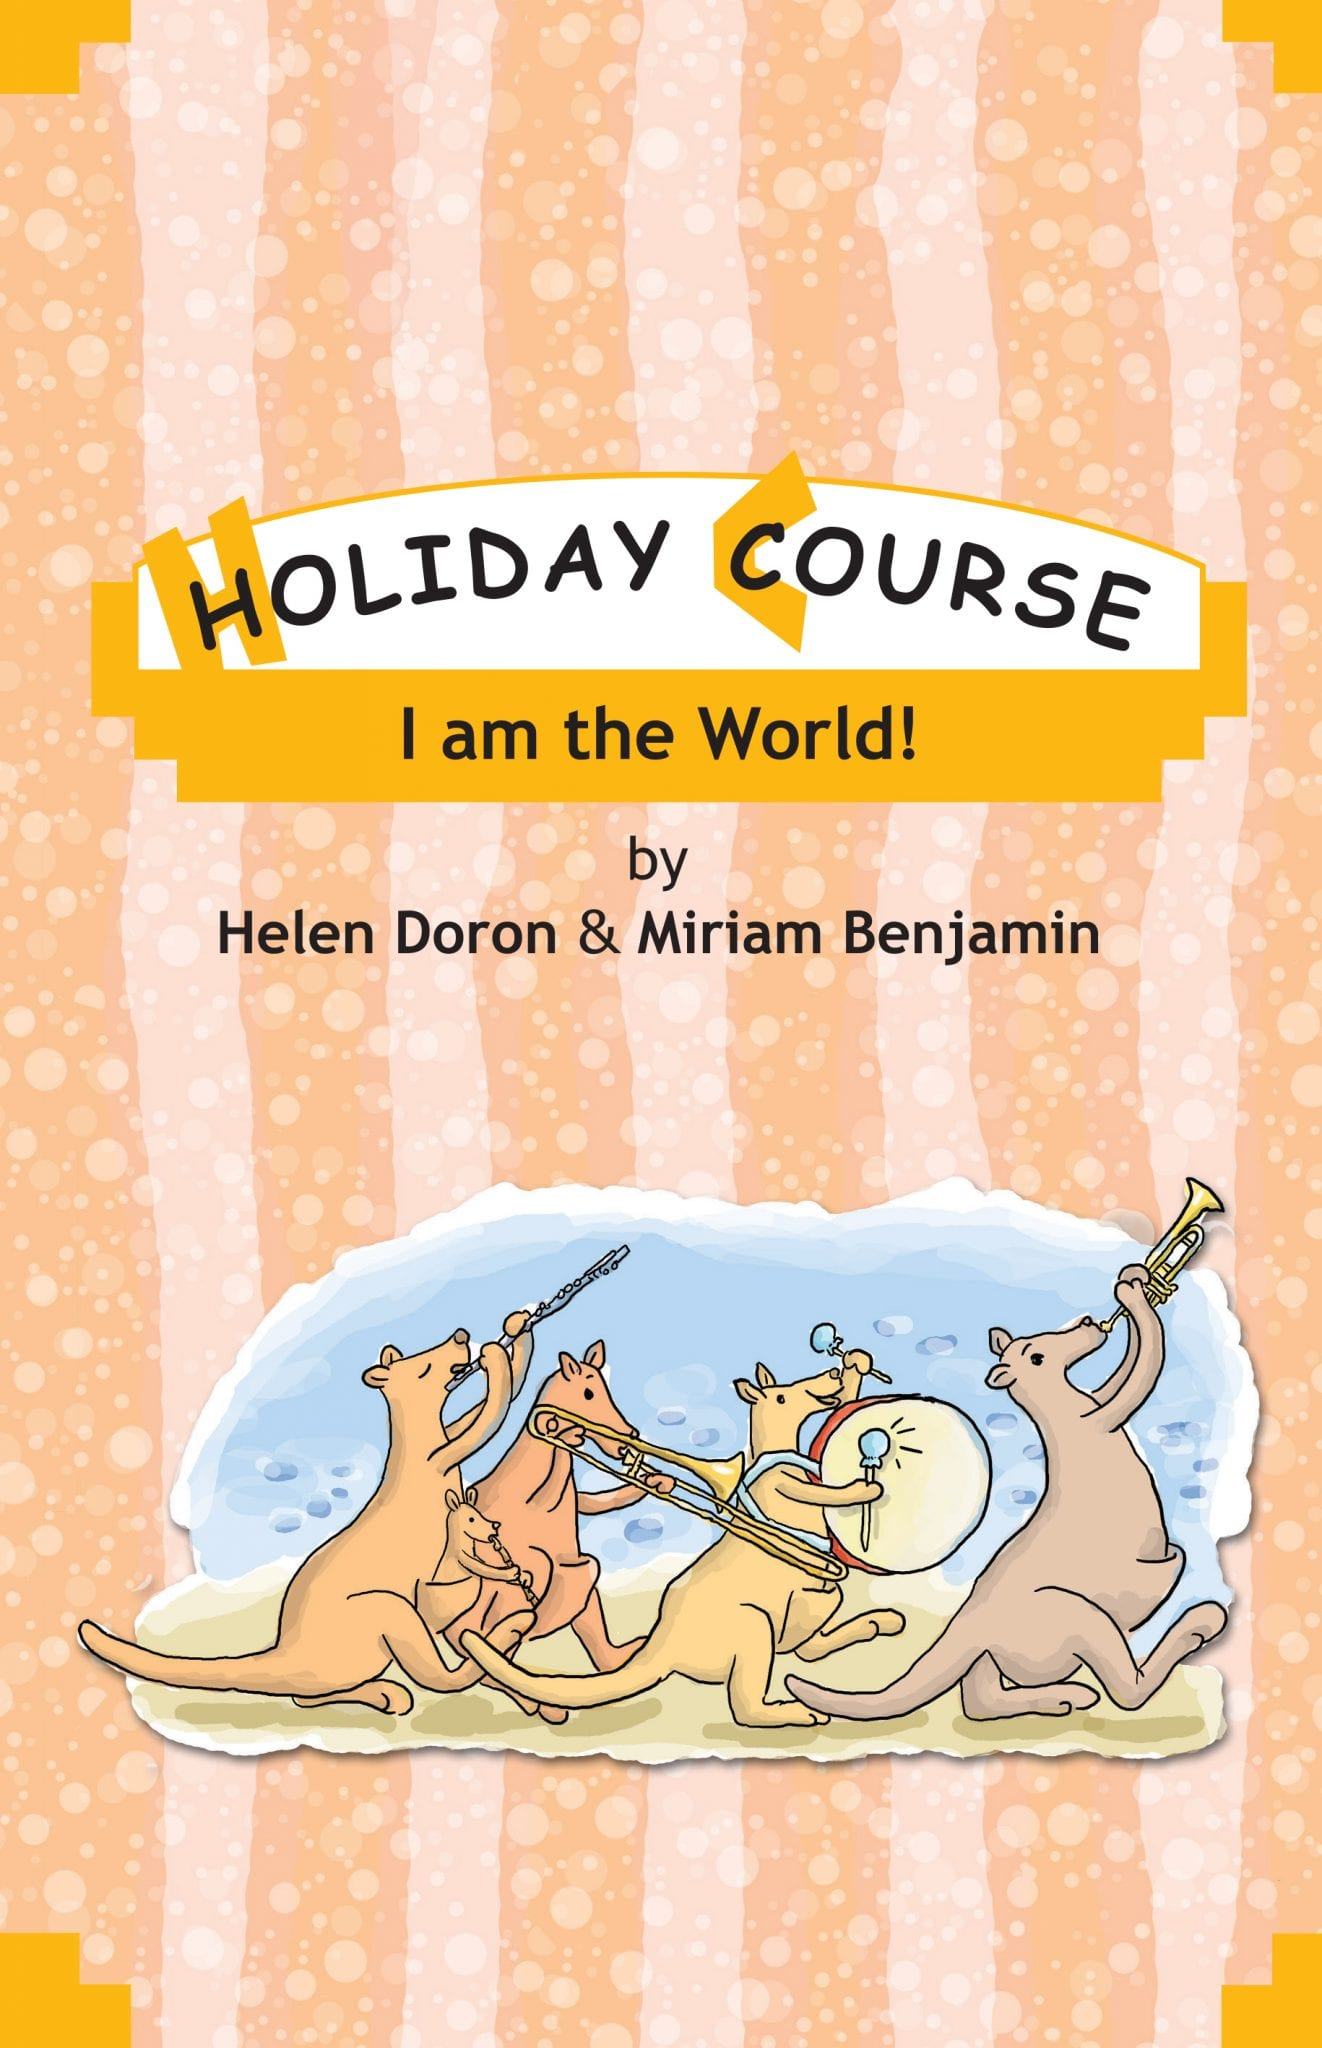 I am the World Holiday Course